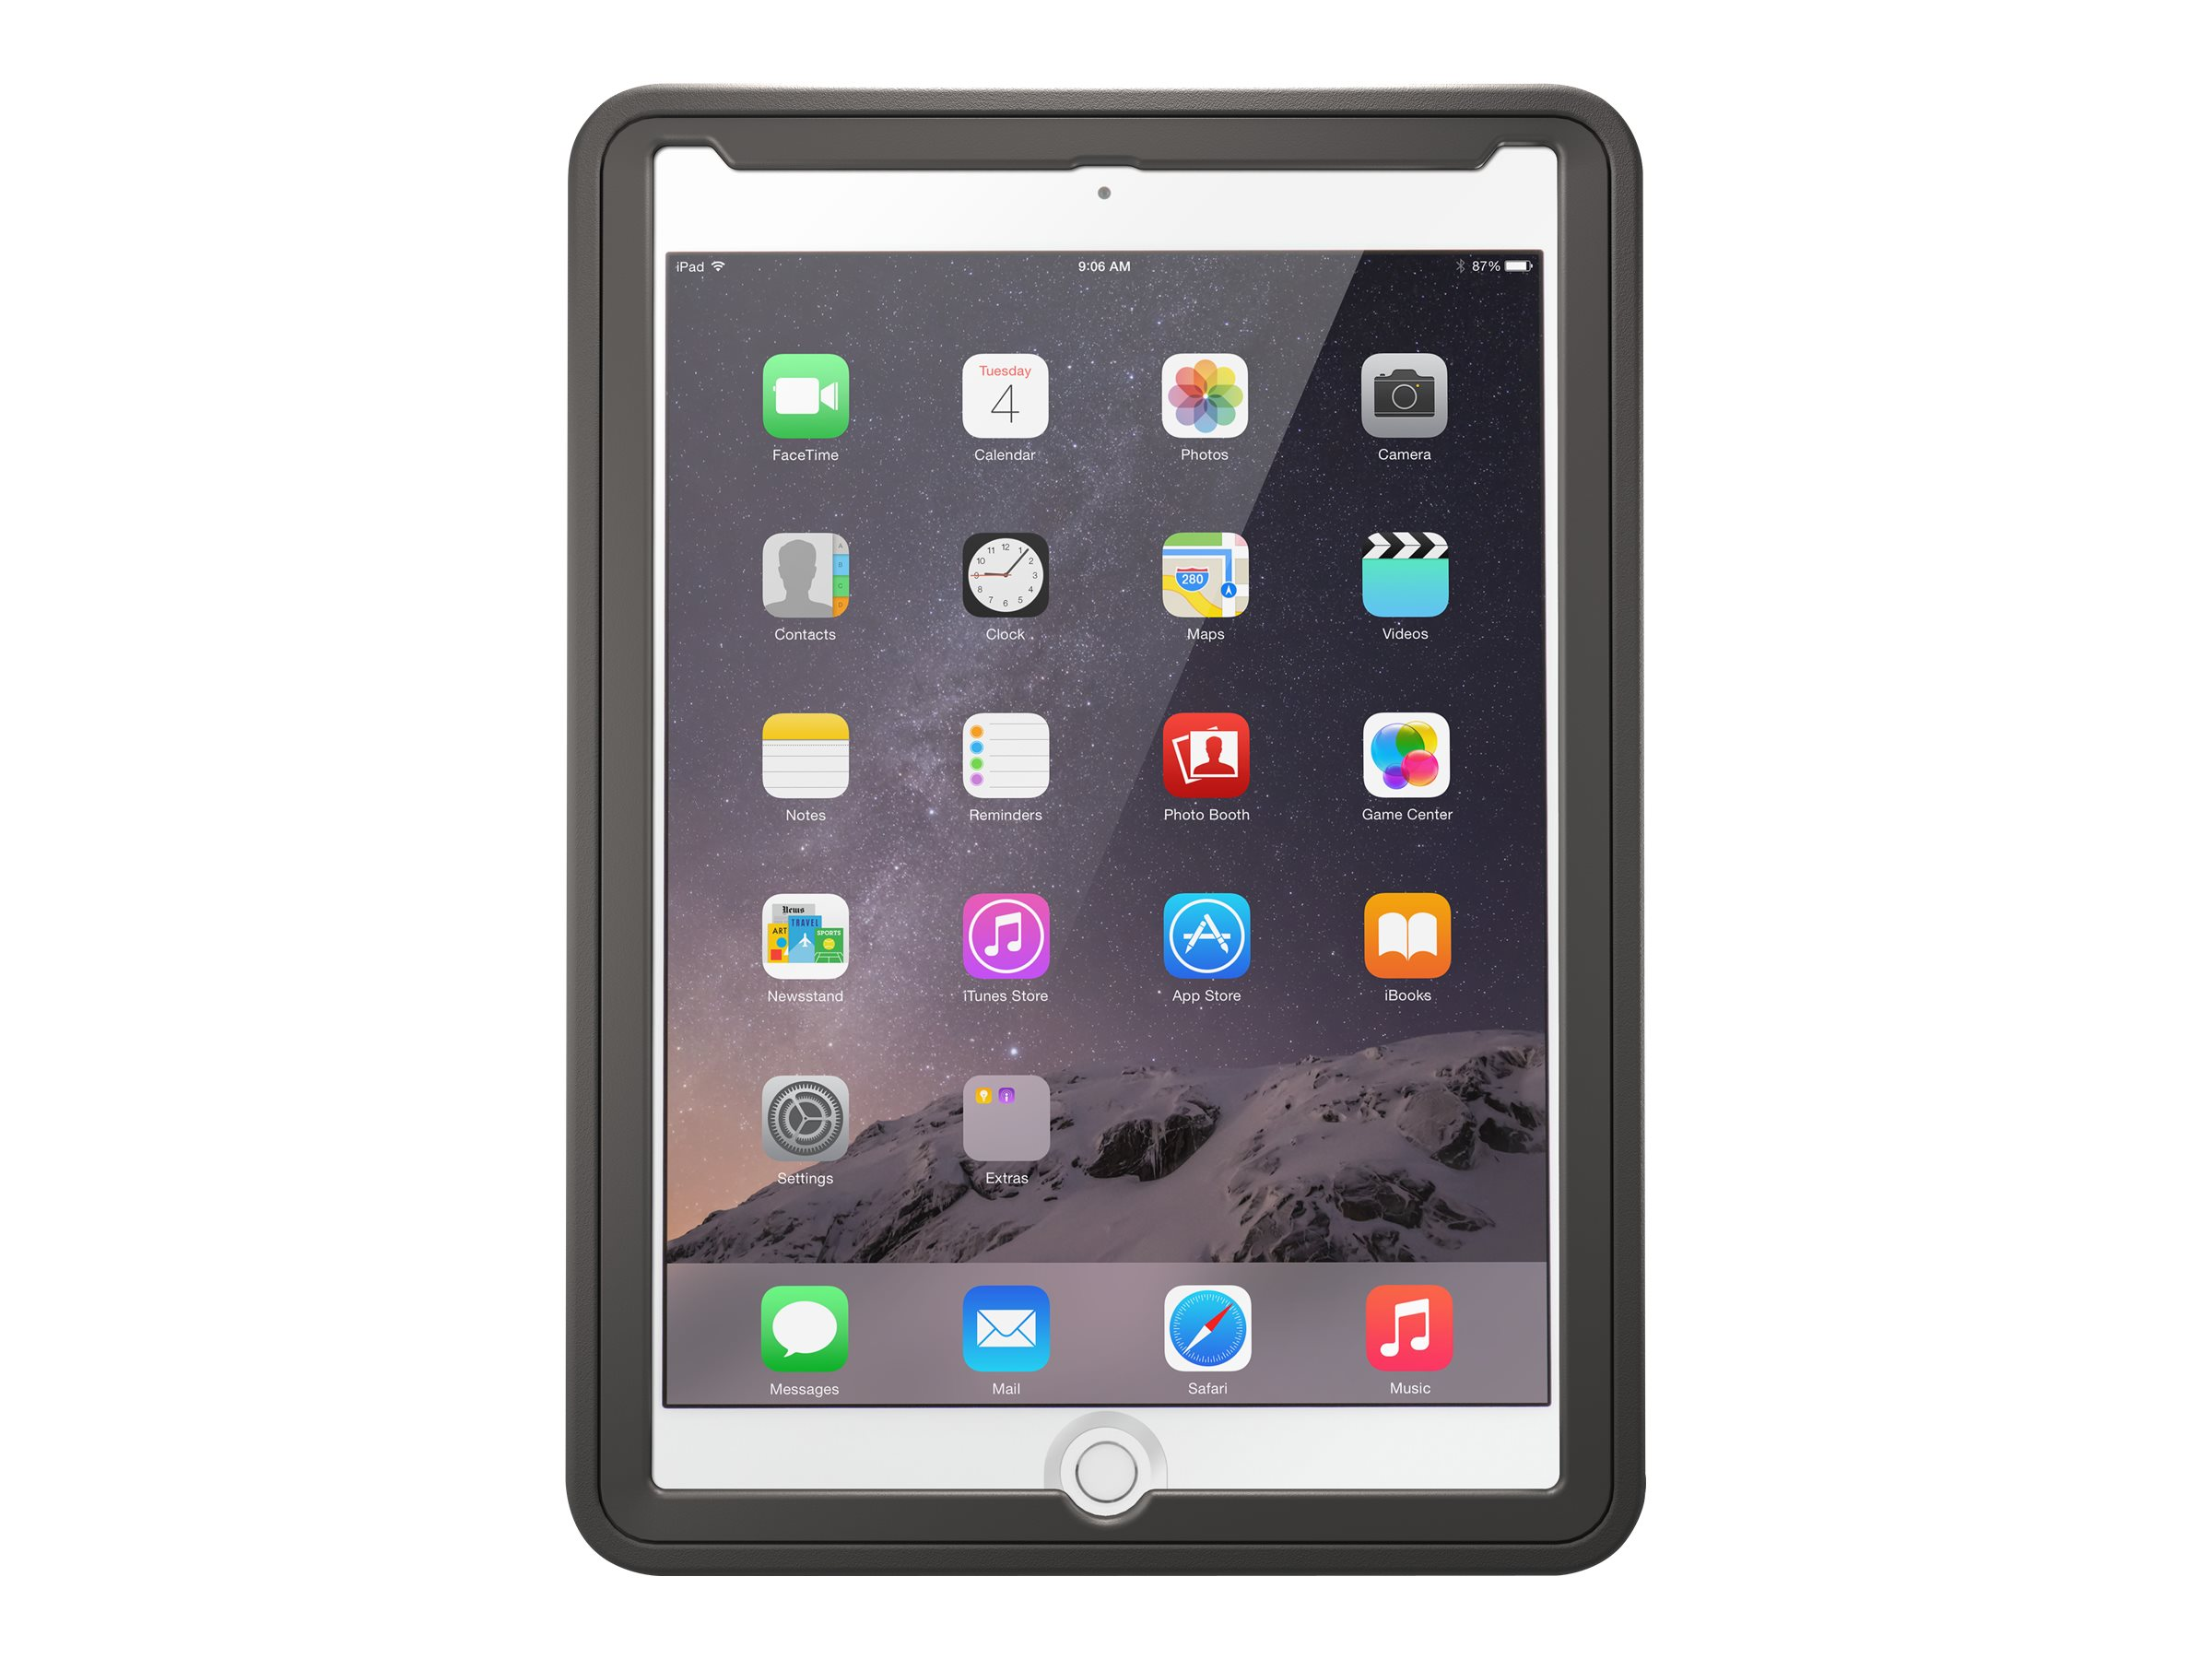 OtterBox Unlimited Education Bulk for iPad Air 2, Slate Gray, 77-51666, 22806048, Carrying Cases - Tablets & eReaders